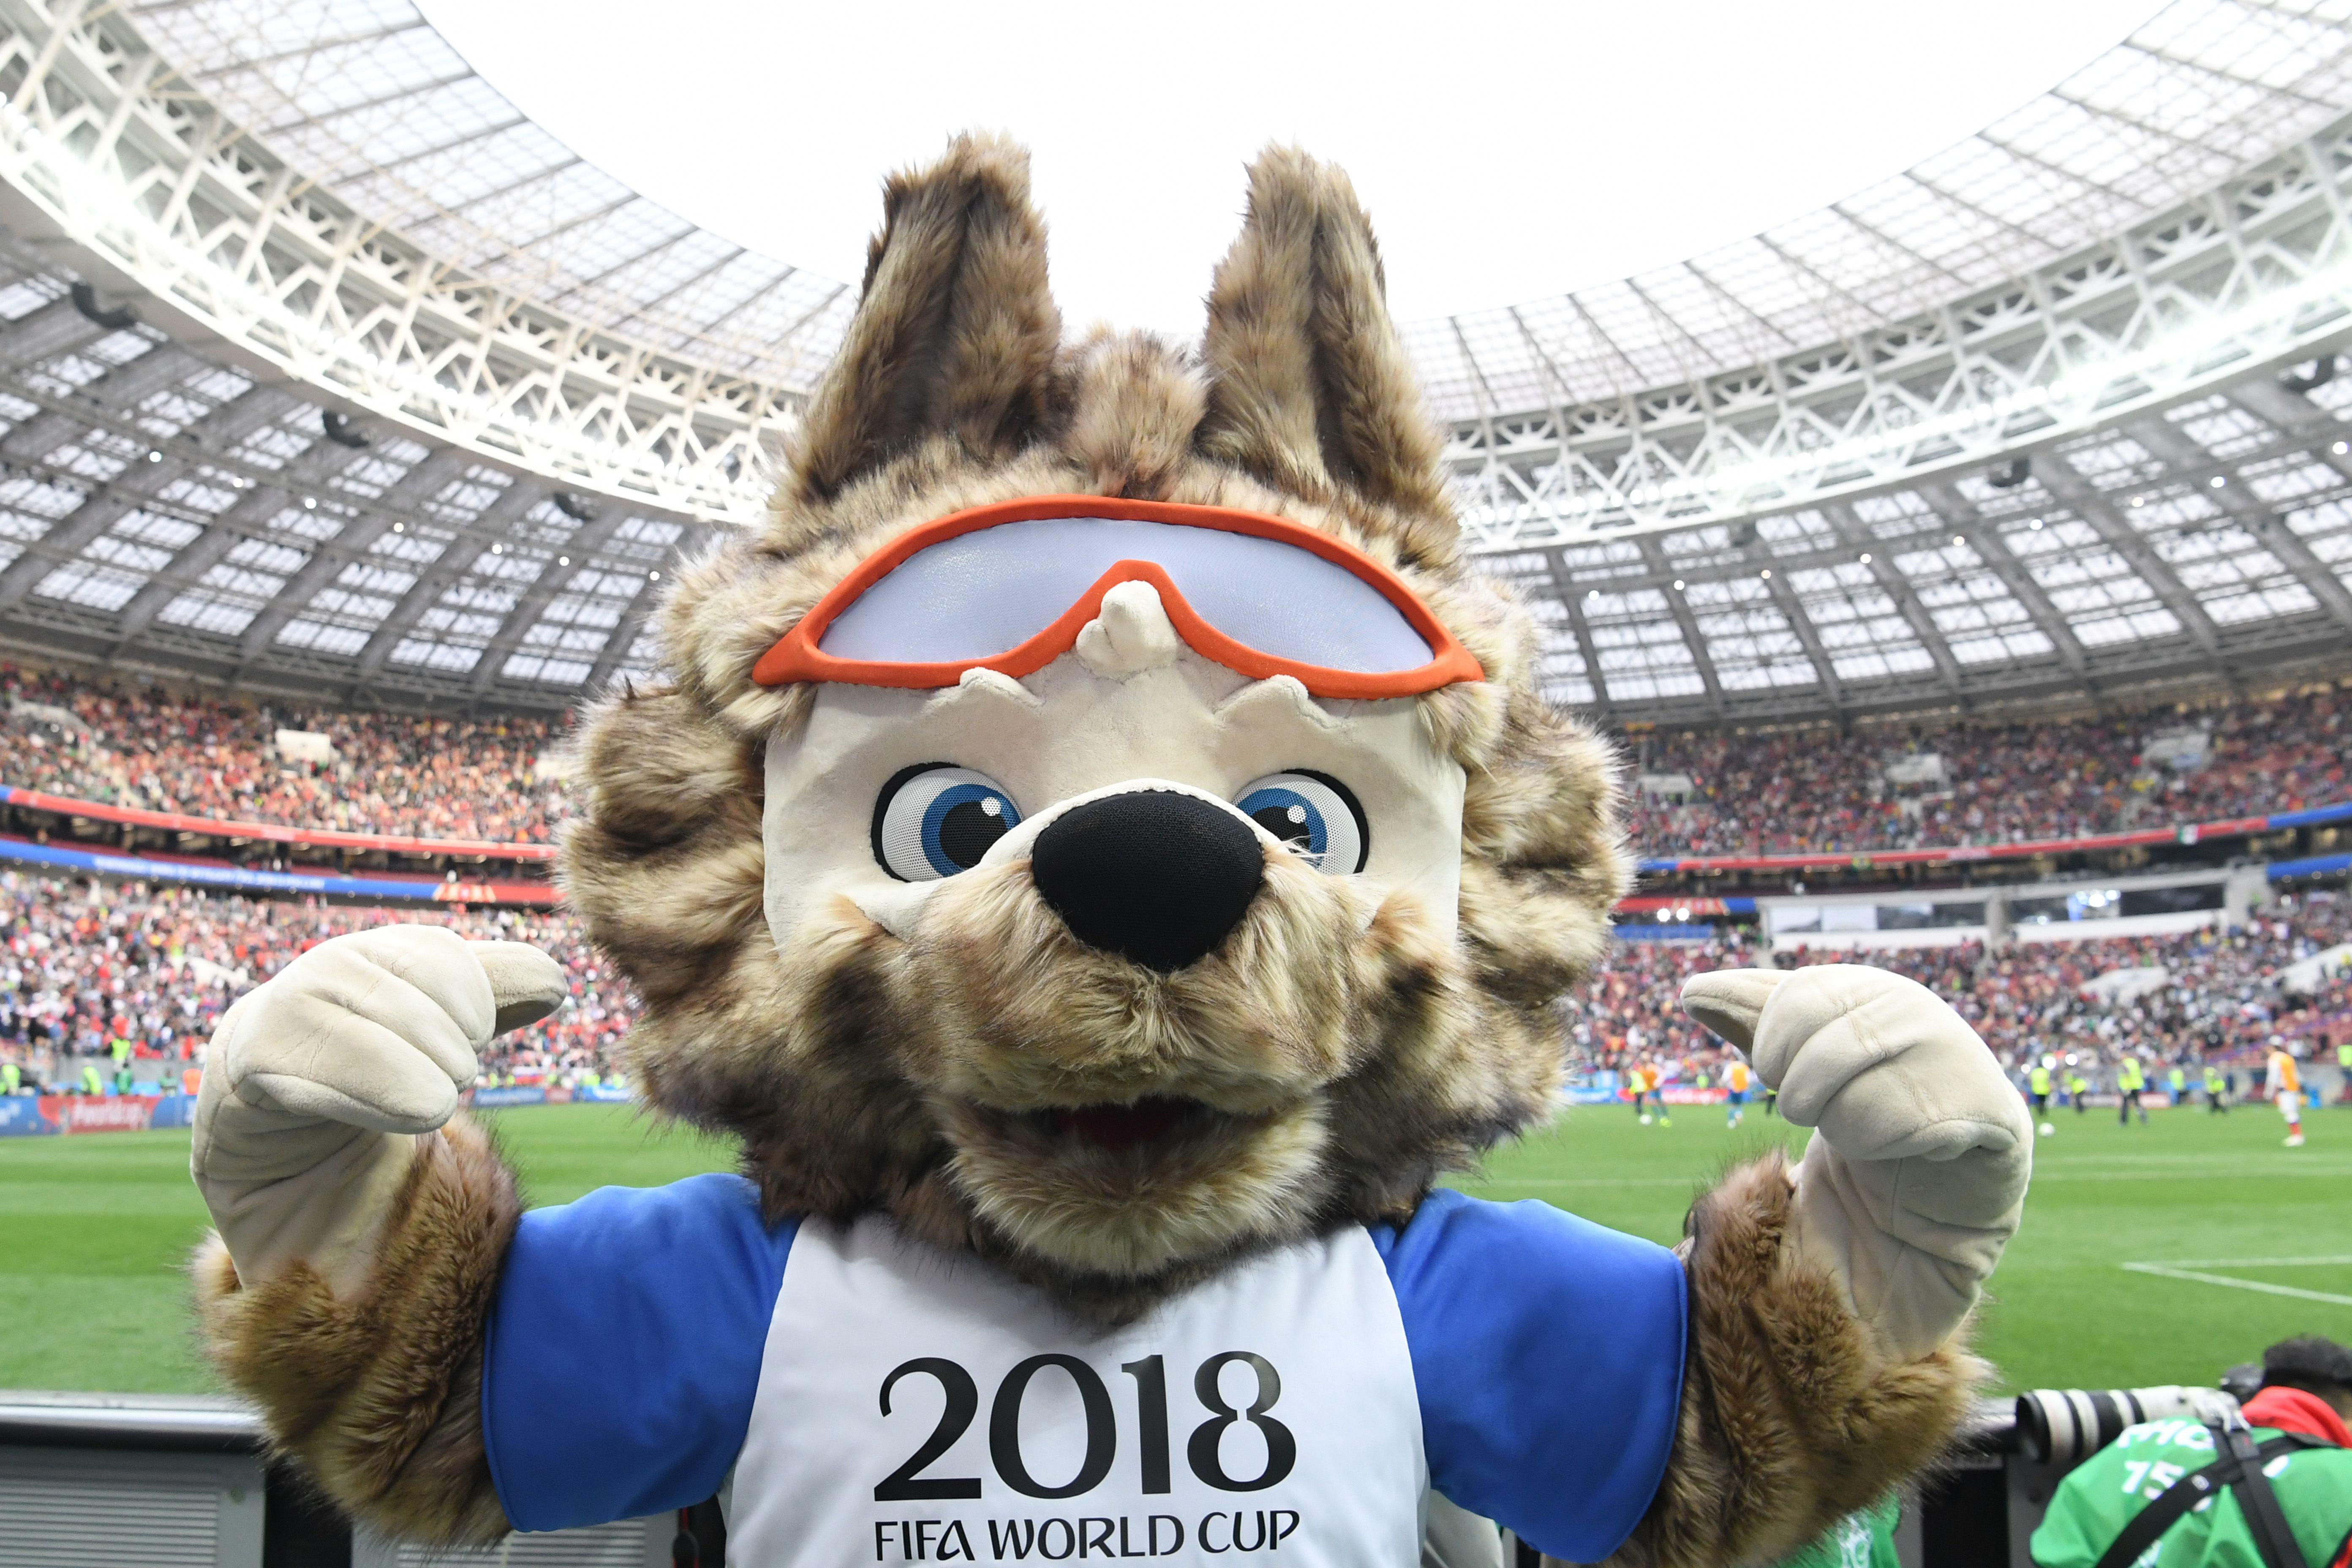 Russia 2018 World Cup football tournament's official mascot Zabivaka poses during the Russia 2018 World Cup Group A football match between Russia and Saudi Arabia at the Luzhniki Stadium in Moscow on June 14, 2018. (Photo by Kirill KUDRYAVTSEV / AFP) / RESTRICTED TO EDITORIAL USE - NO MOBILE PUSH ALERTS/DOWNLOADS        (Photo credit should read KIRILL KUDRYAVTSEV/AFP/Getty Images)